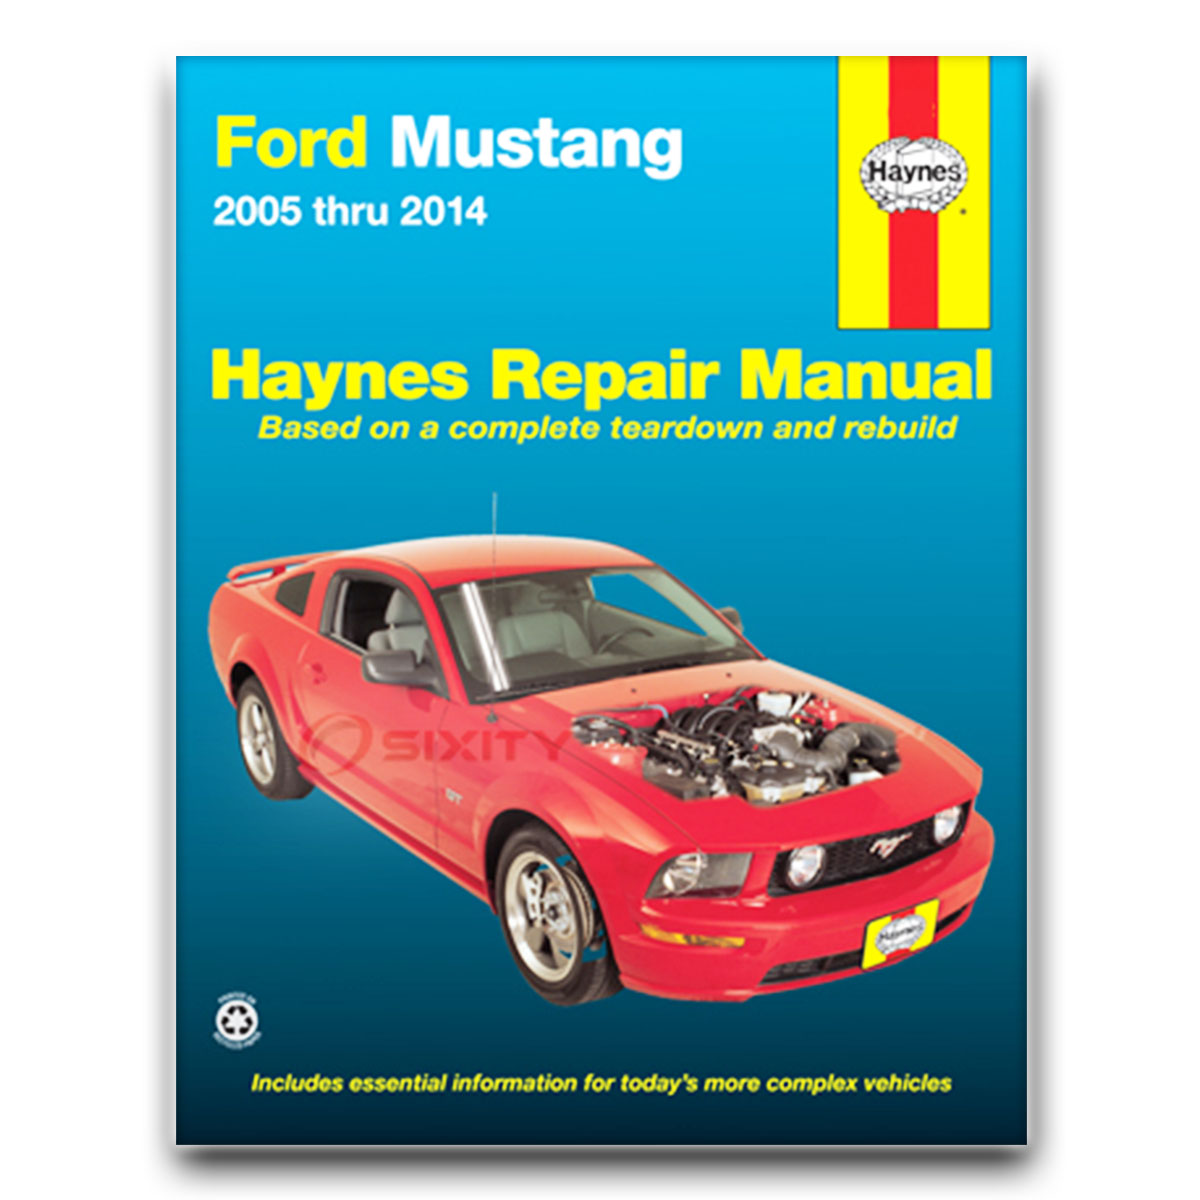 haynes ford mustang 05 10 repair manual 36052 shop service garage rh ebay com 2005 mustang service manual download 2005 Mustang Manual Interior